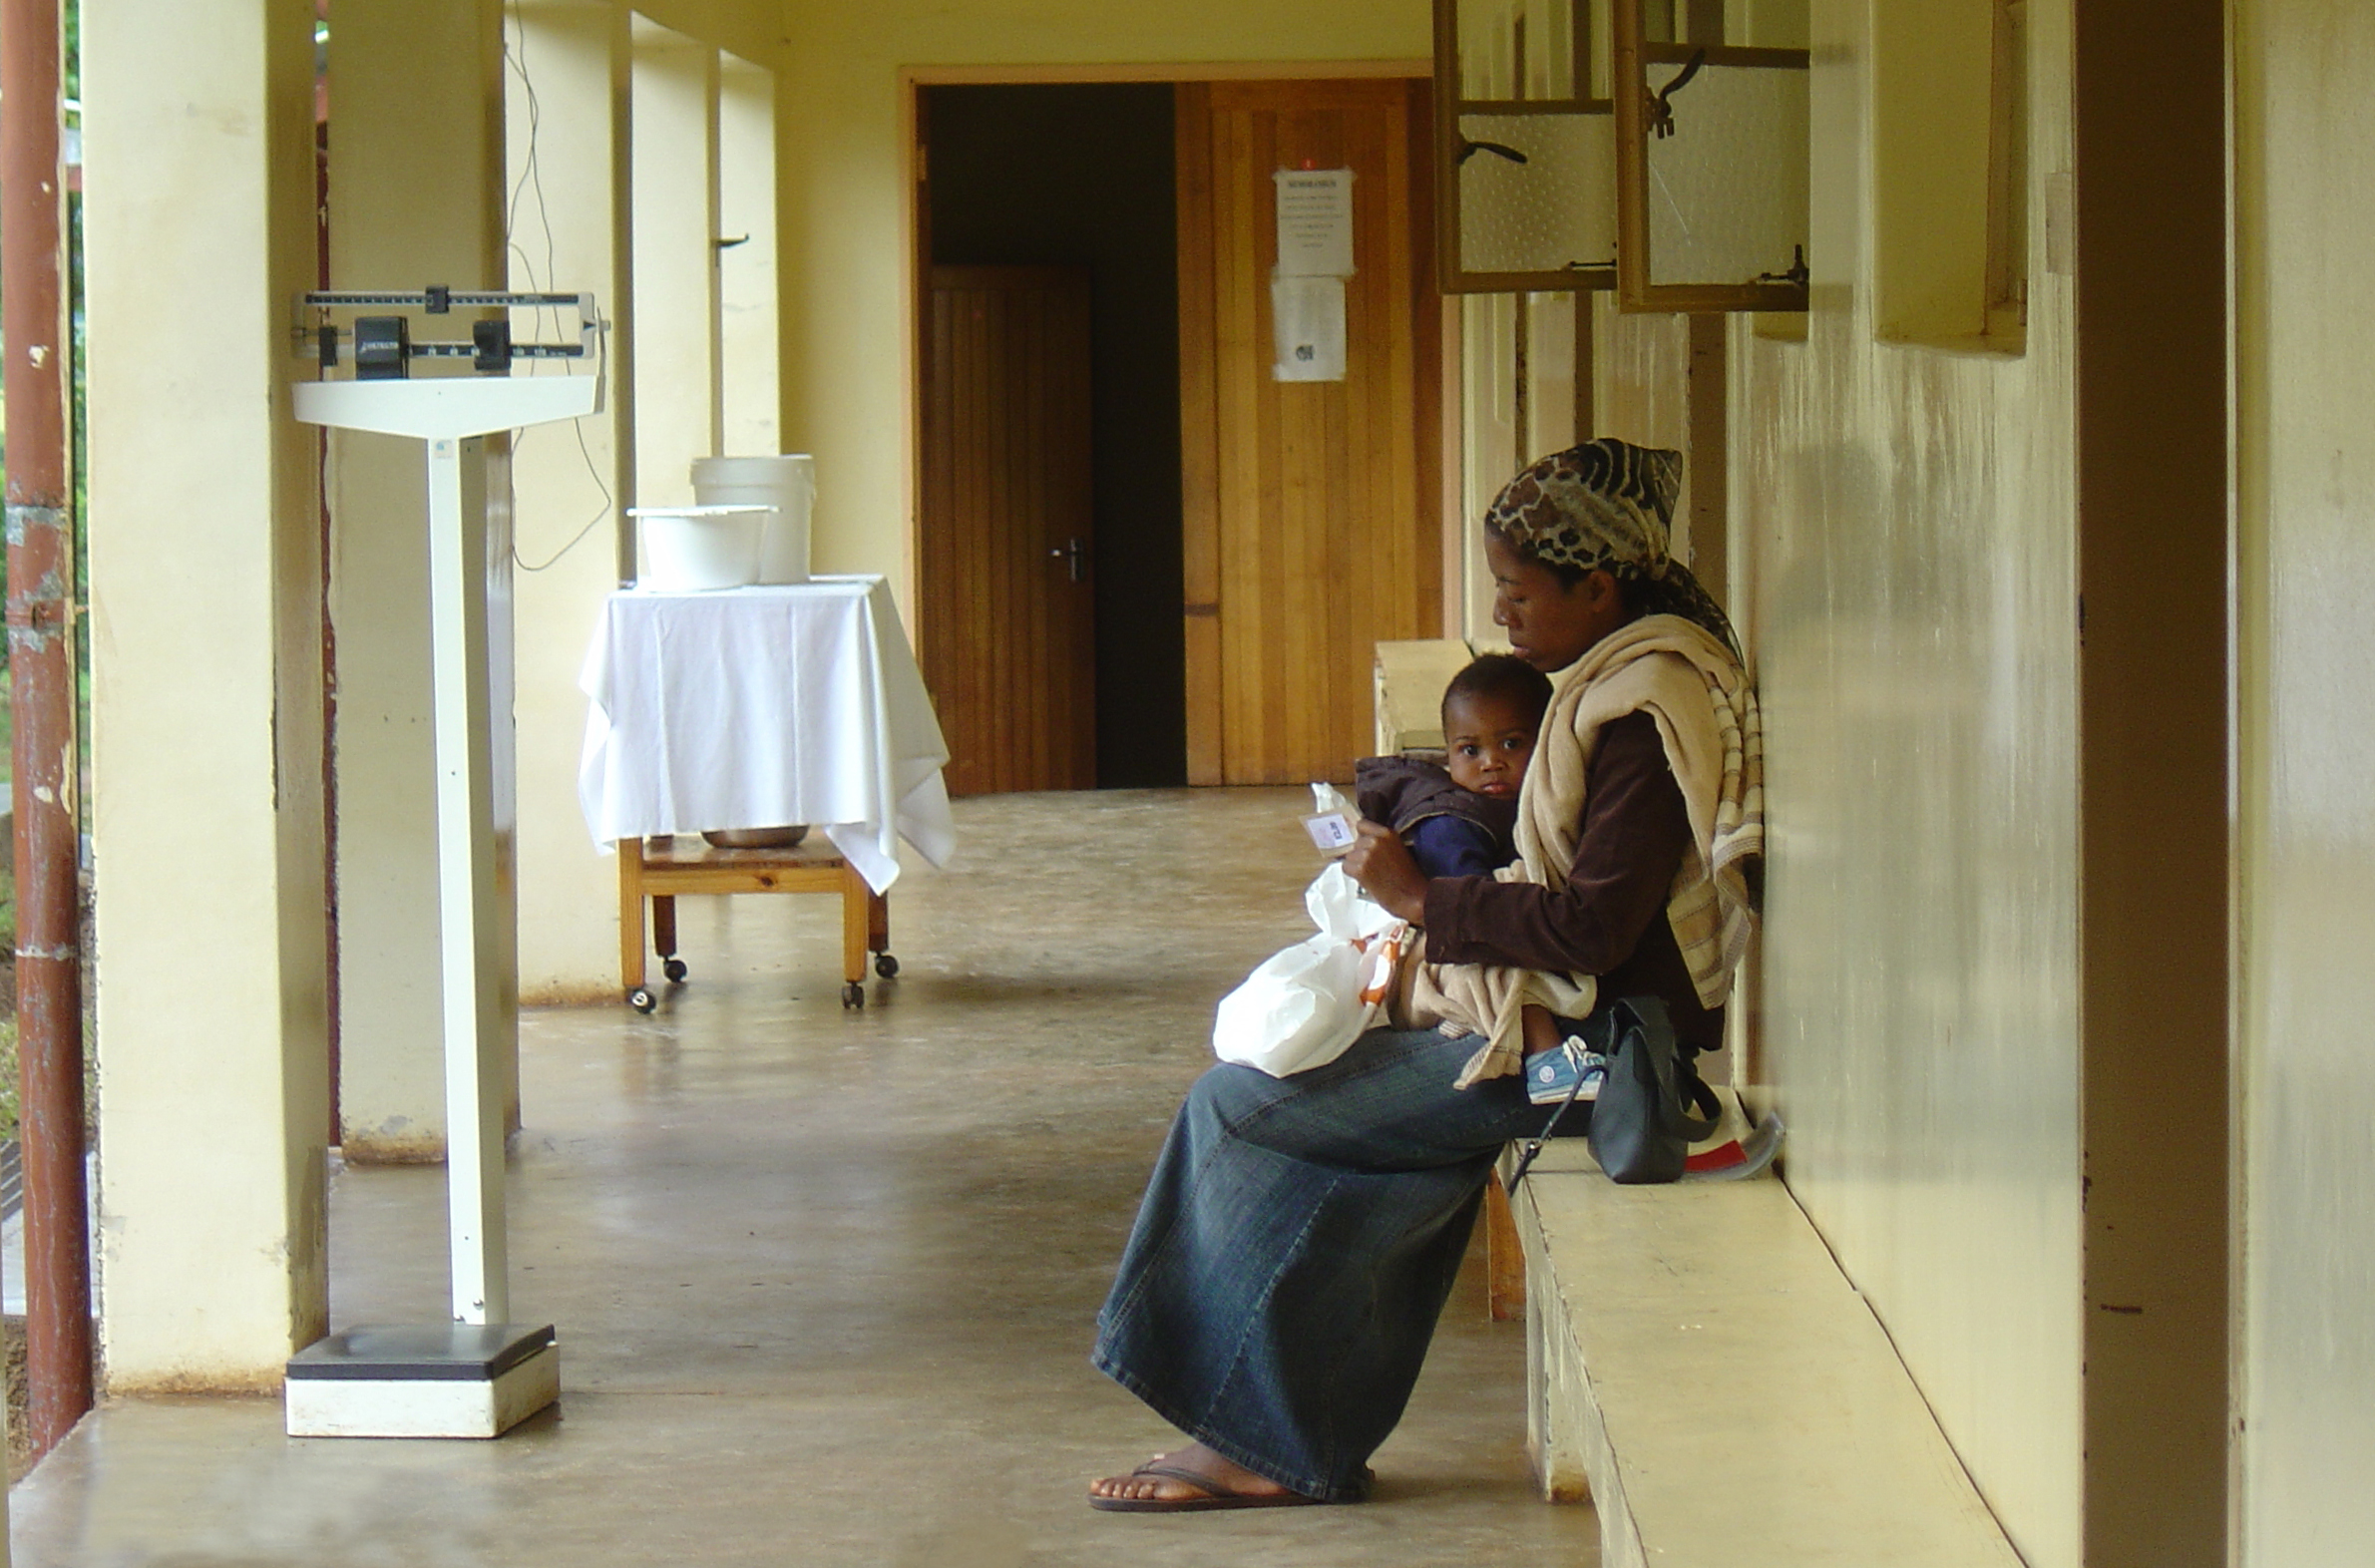 Leave No One Behind | Changhua Christian Hospital | Swaziland